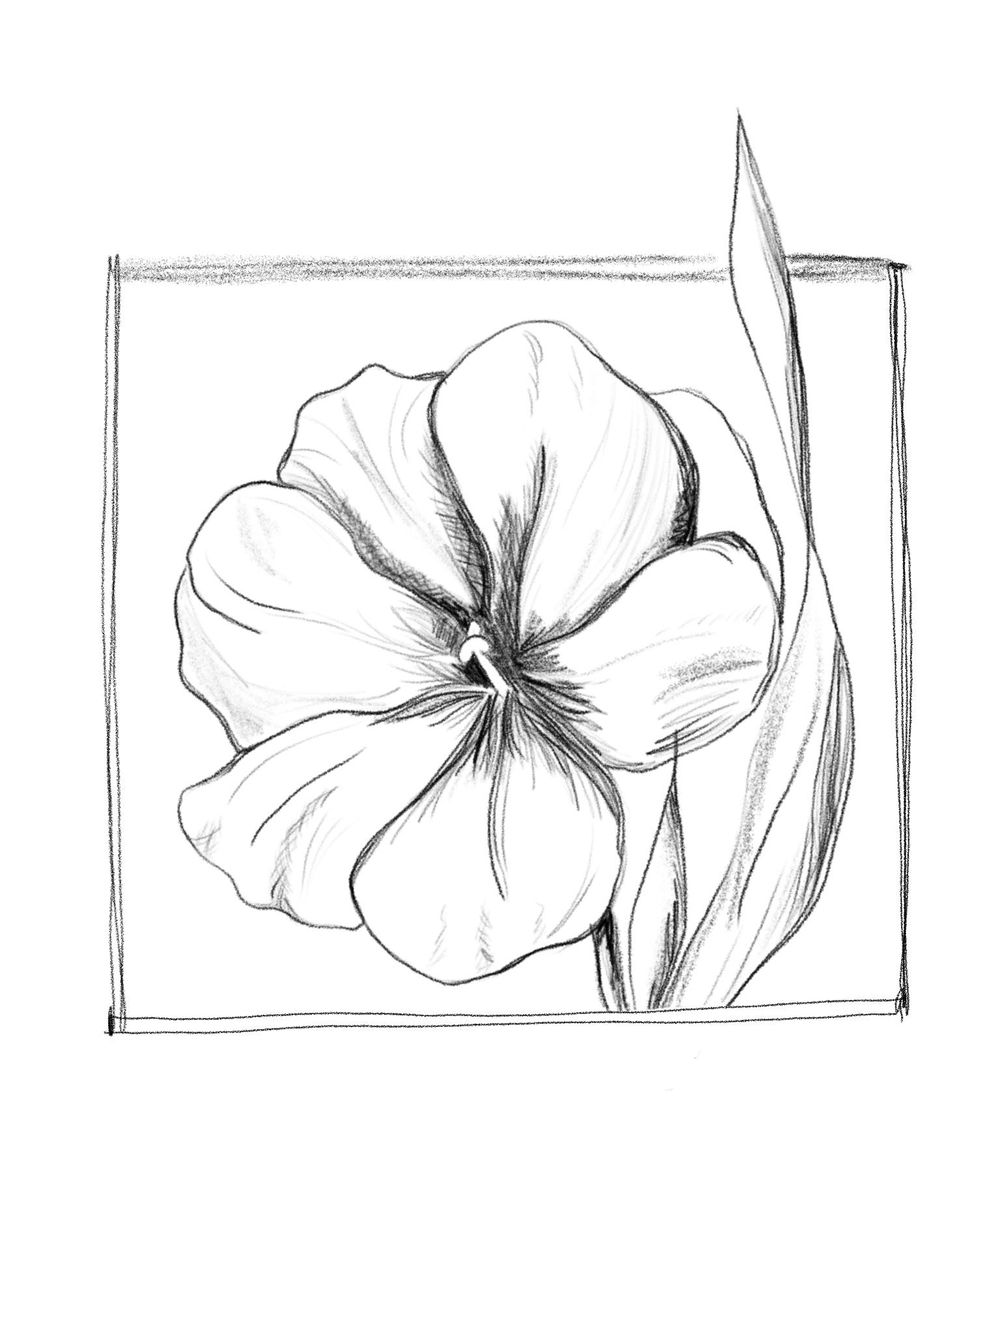 Flower Rough Sketch - image 4 - student project